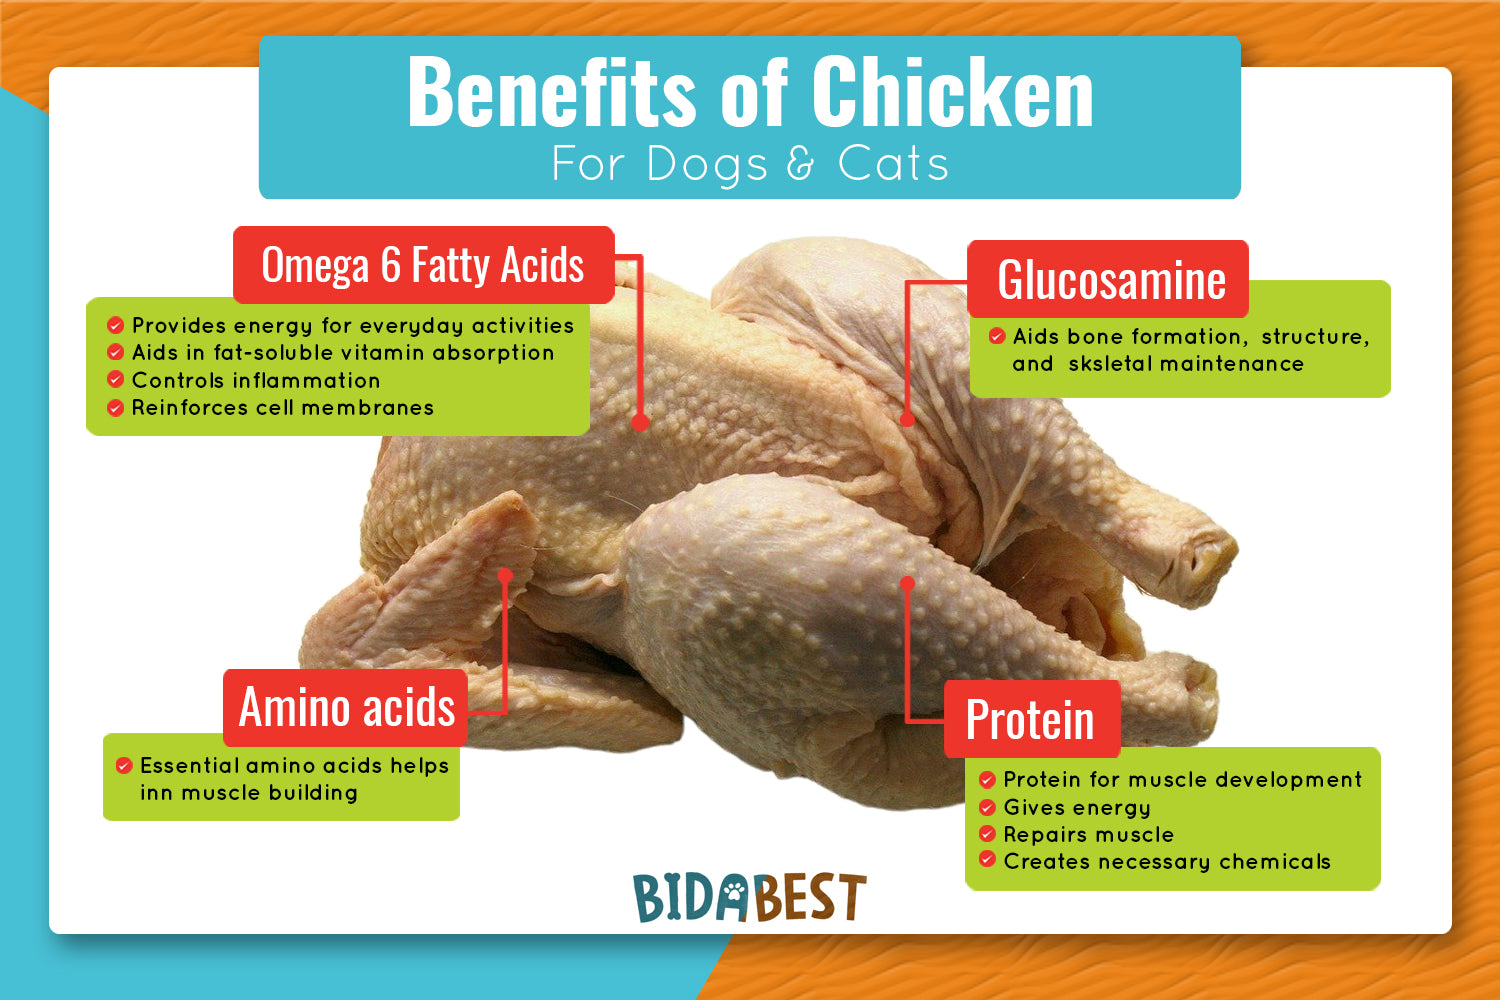 Benefits of chicken for dogs and cats